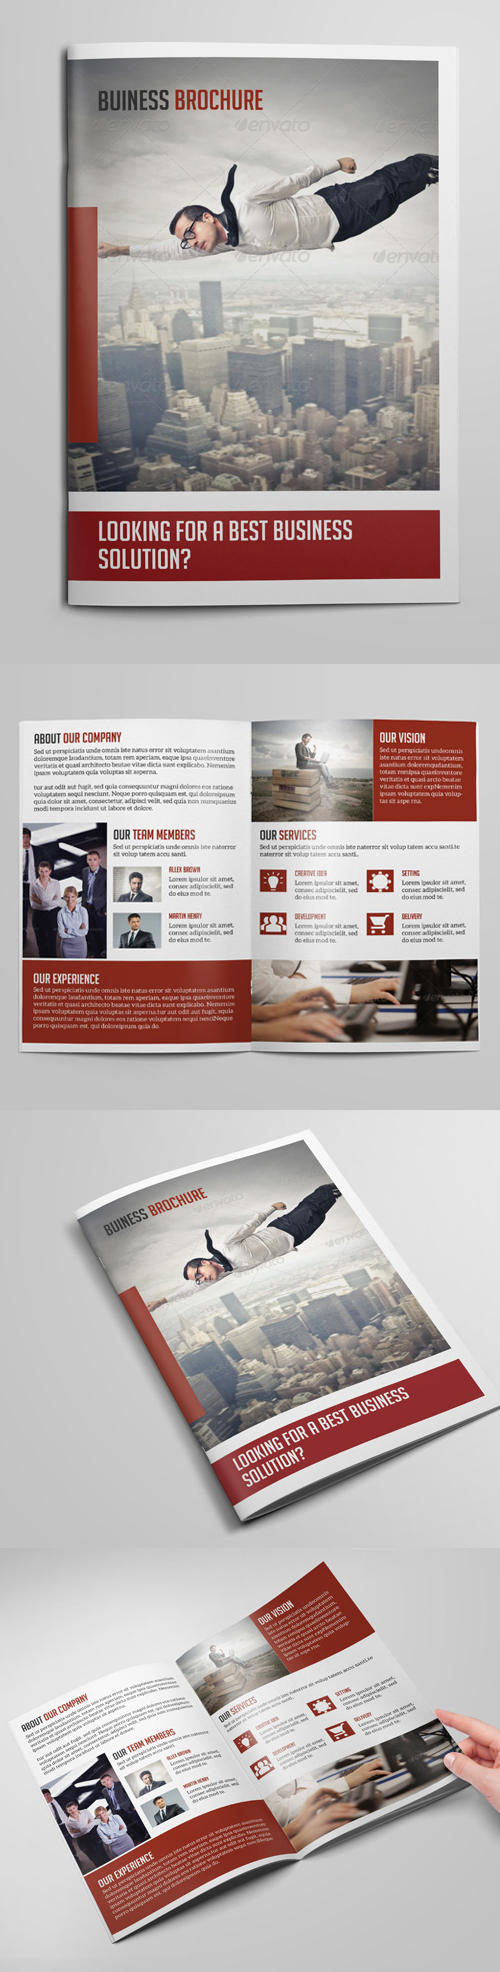 Corporate Bi- Fold Business Brochure Design